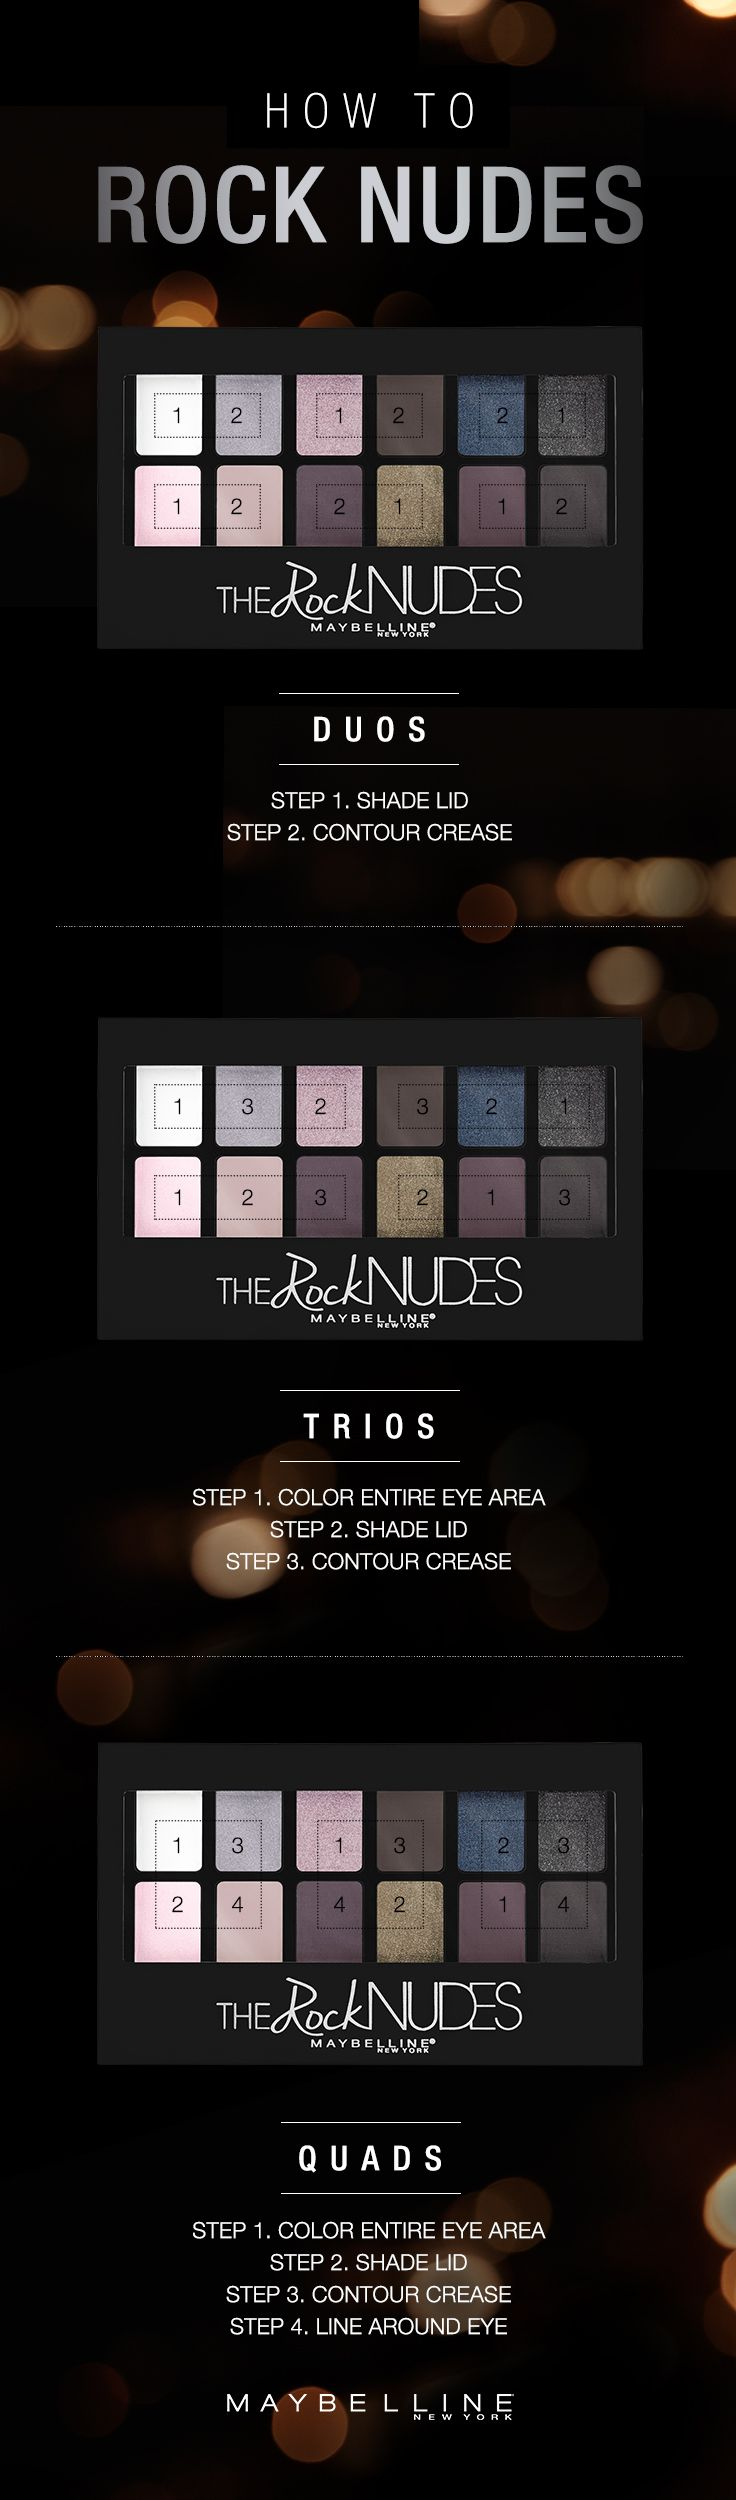 Create 13 different eye looks with the Maybelline Rock Nudes eyeshadow palette. Edited for edge, from heavy metal to quietly quartz, dare to rock nude. Follow this makeup guide for eye looks to rock this summer.